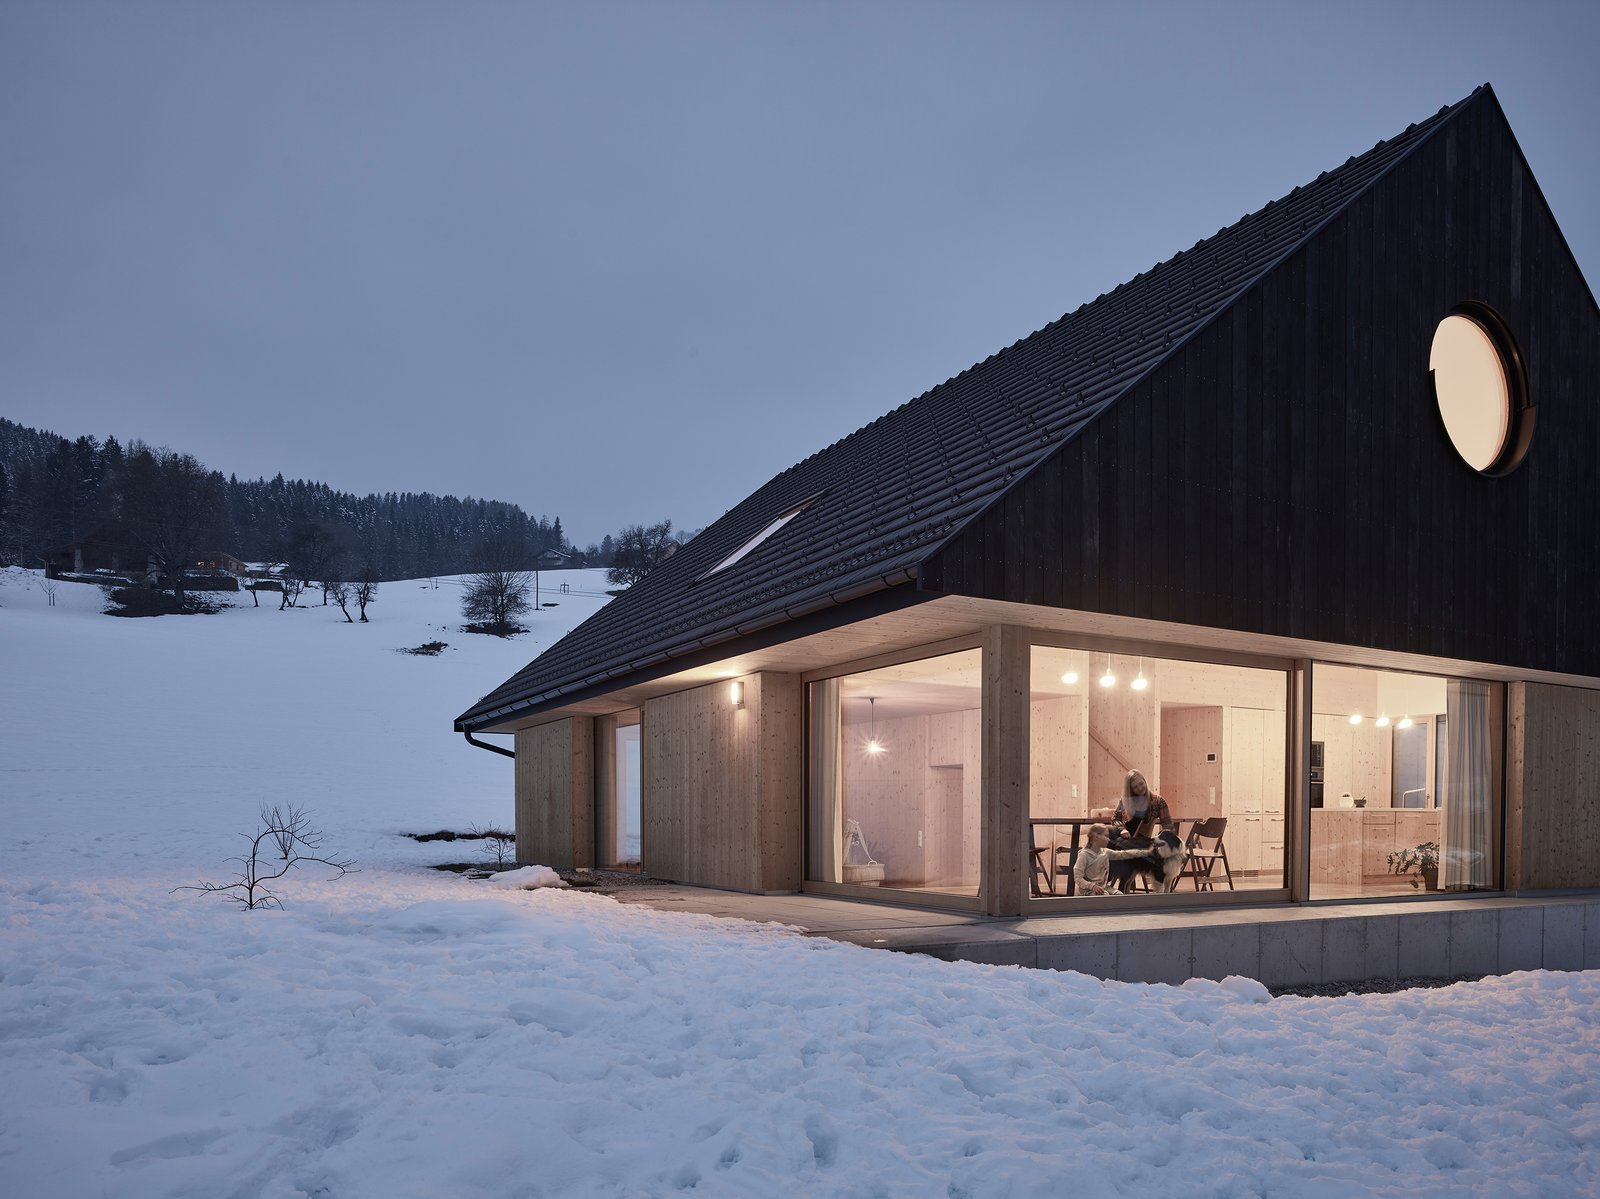 Exterior, House Building Type, Wood Siding Material, Gable RoofLine, Cabin Building Type, Shingles Roof Material, and Metal Roof Material In summer, the living area is surrounded by grass that covers the terrain. Yet, once winter comes, this same area appears to be nestled within a blanket of snow.    Best Photos from This Sleek Austrian Home Turns Into a Cozy Light Box at Night